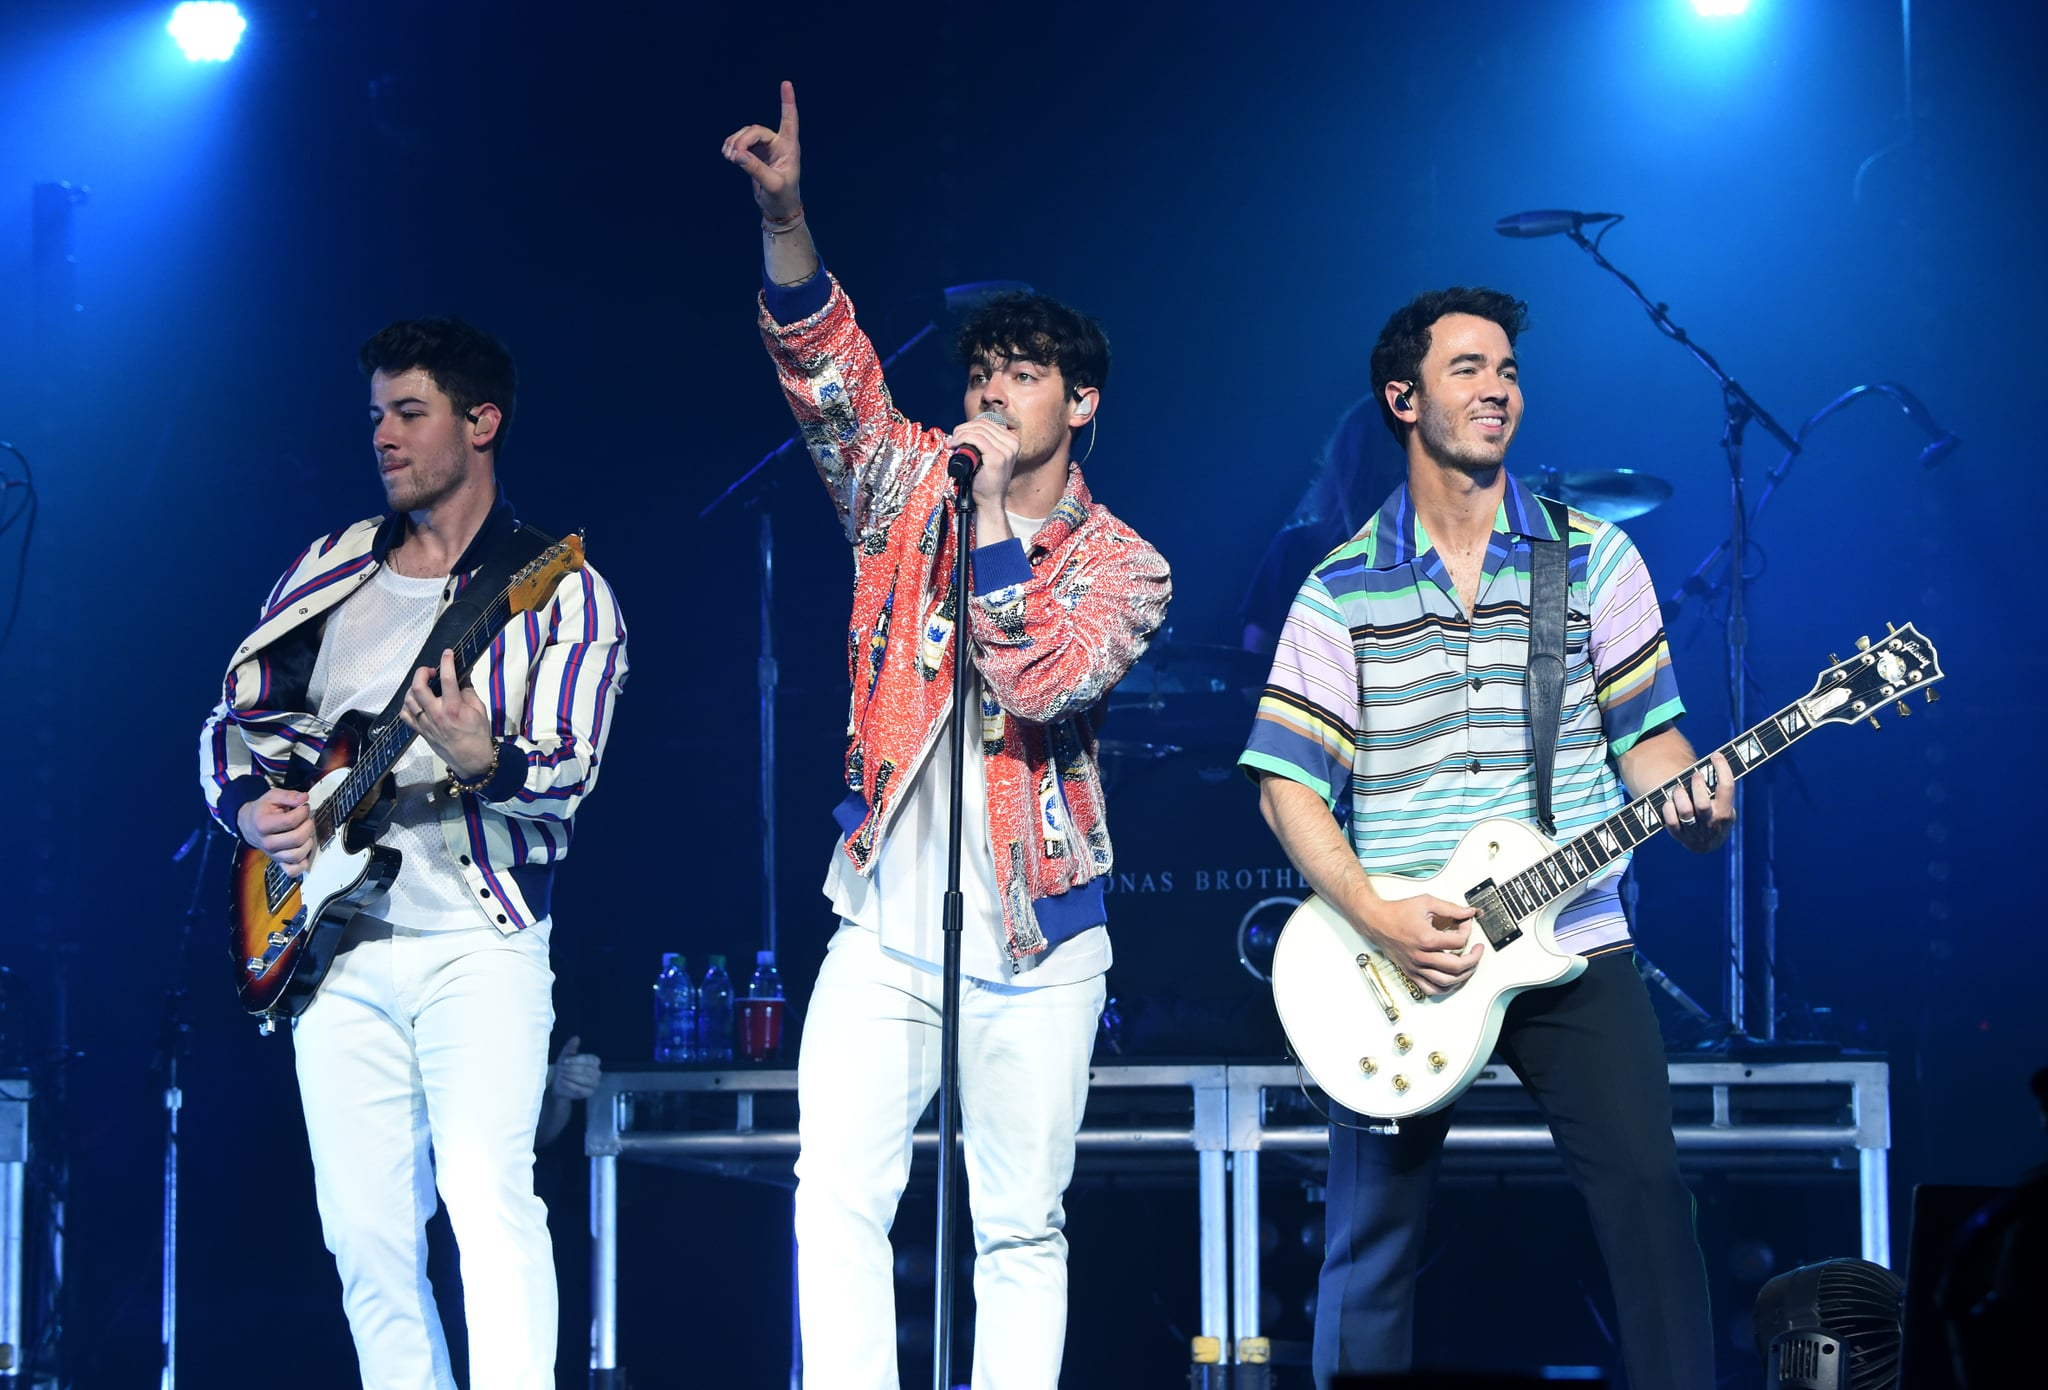 MINNEAPOLIS, MINNESOTA - APRIL 06: (L-R) Nick Jonas, Joe Jonas, and Kevin Jonas of the Jonas Brothers perform onstage at the March Madness Music Series featuring Jonas Brothers presented by Coca-Cola during the NCAA March Madness Music Series at The Armory on April 06, 2019 in Minneapolis, Minnesota. (Photo by Kevin Mazur/Getty Images for Turner Sports)